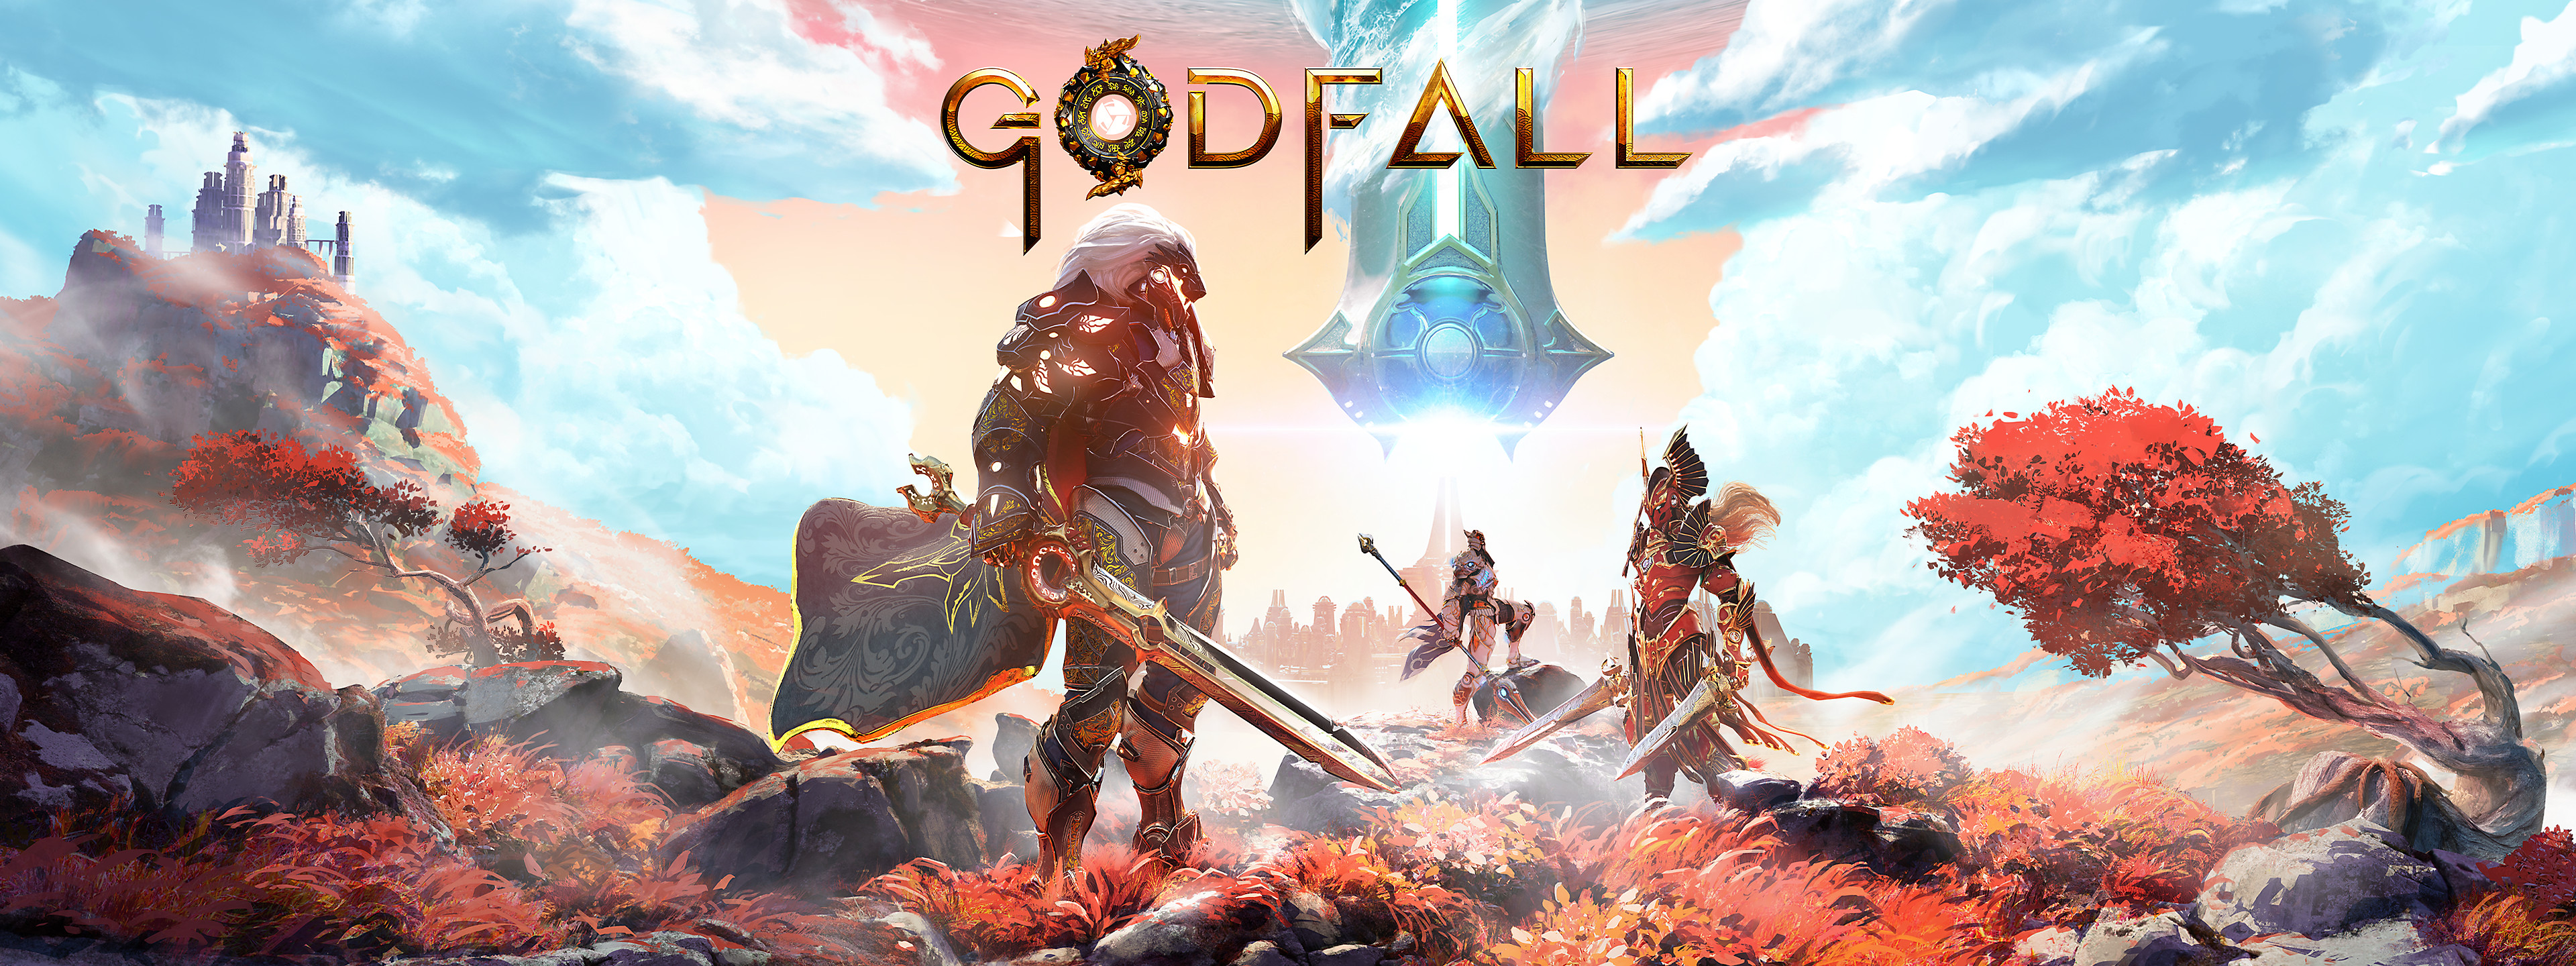 Godfall - Combat Trailer Now Available